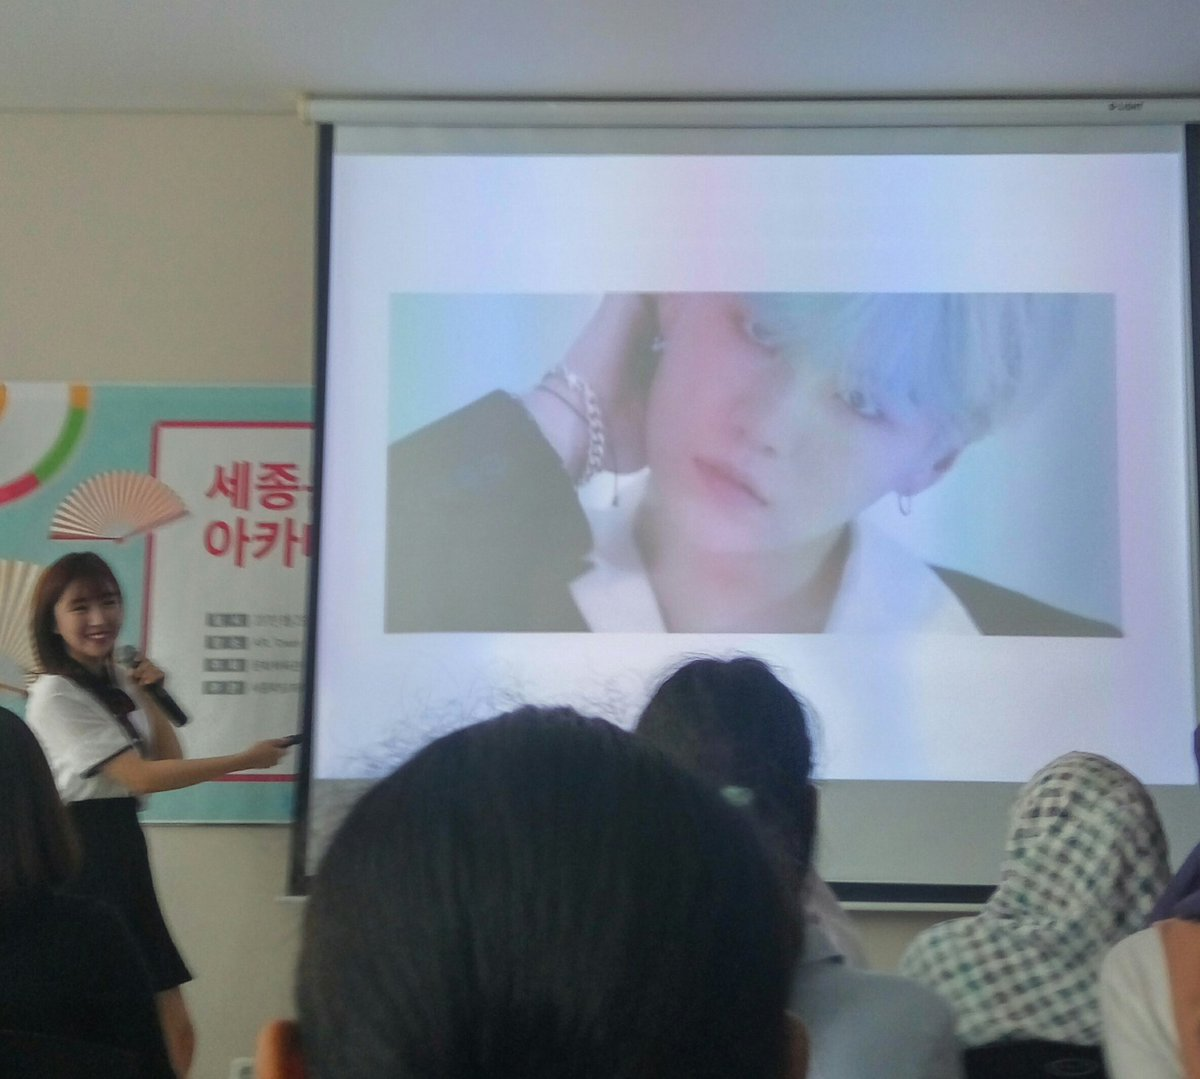 so i was attending a korean beauty class...